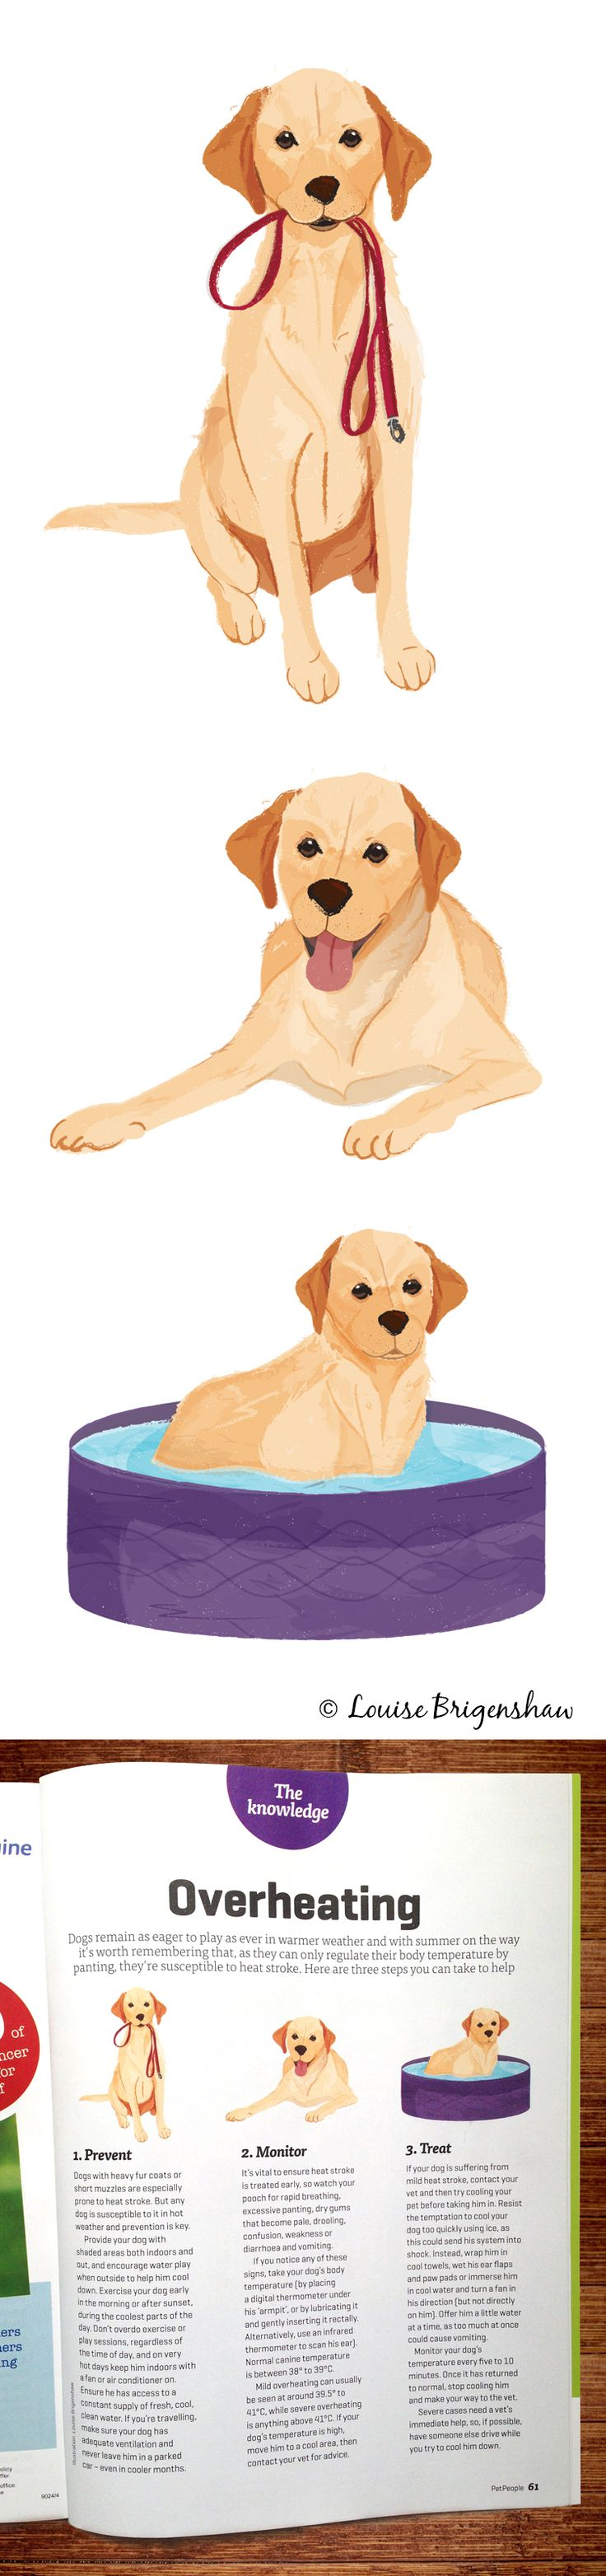 Dog illustrations by Louise Brigenshaw for Pet People Magazine.